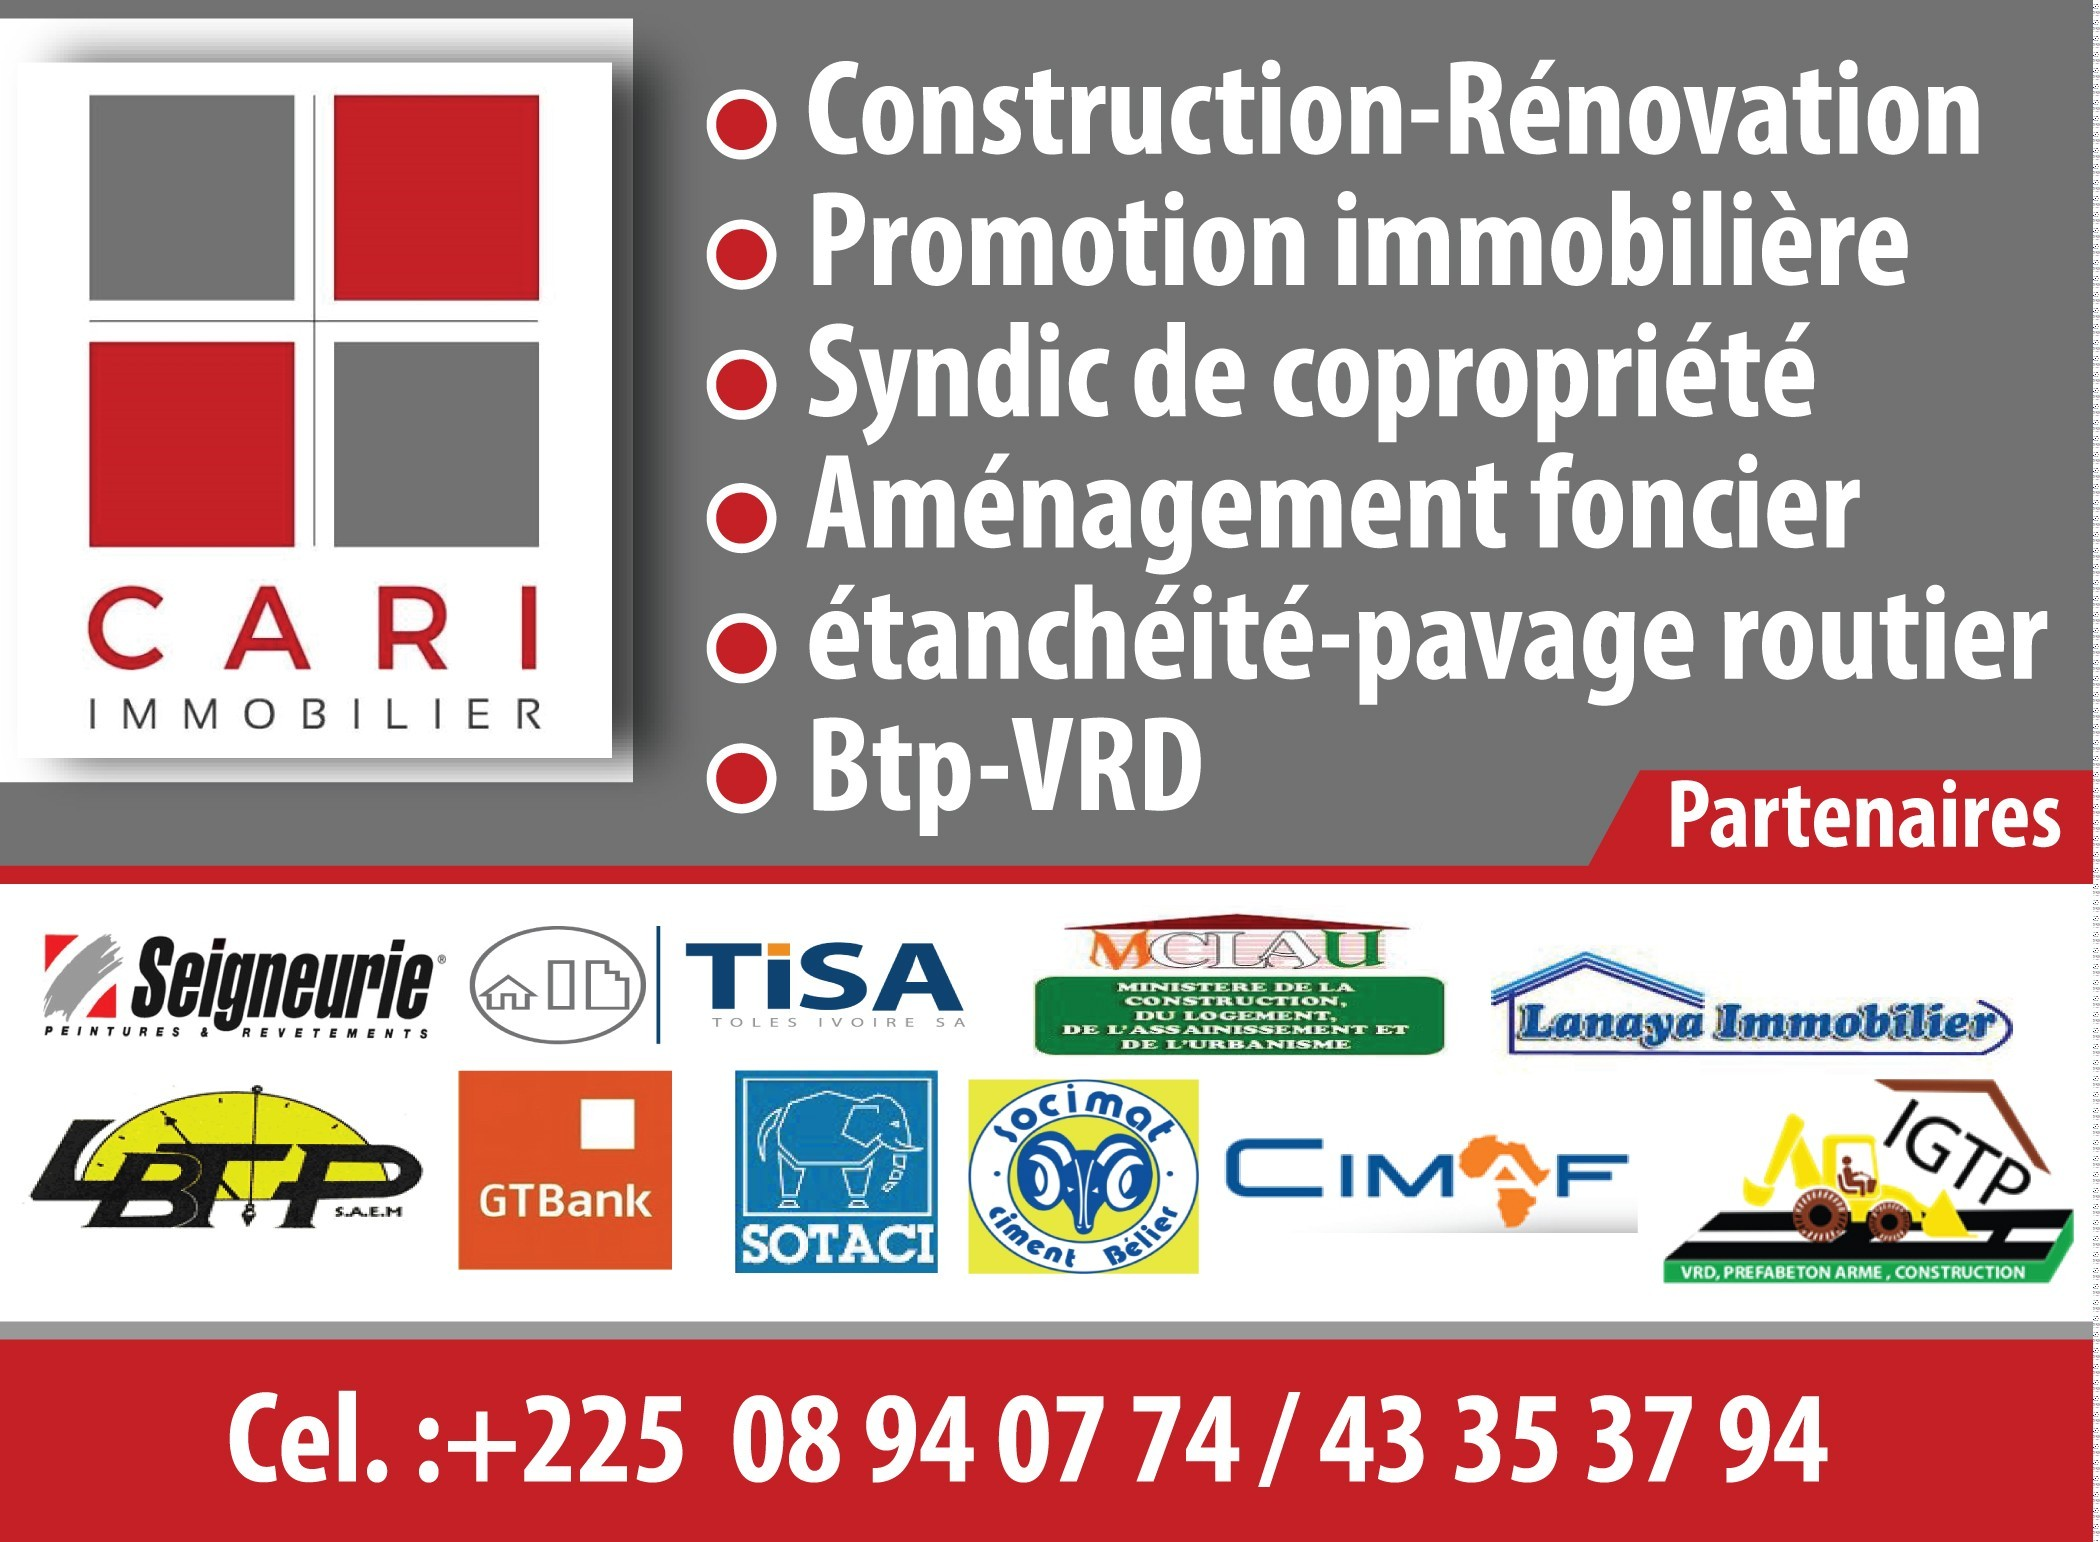 Cari compagnie africaine de realisation immobiliere for Construction immobiliere